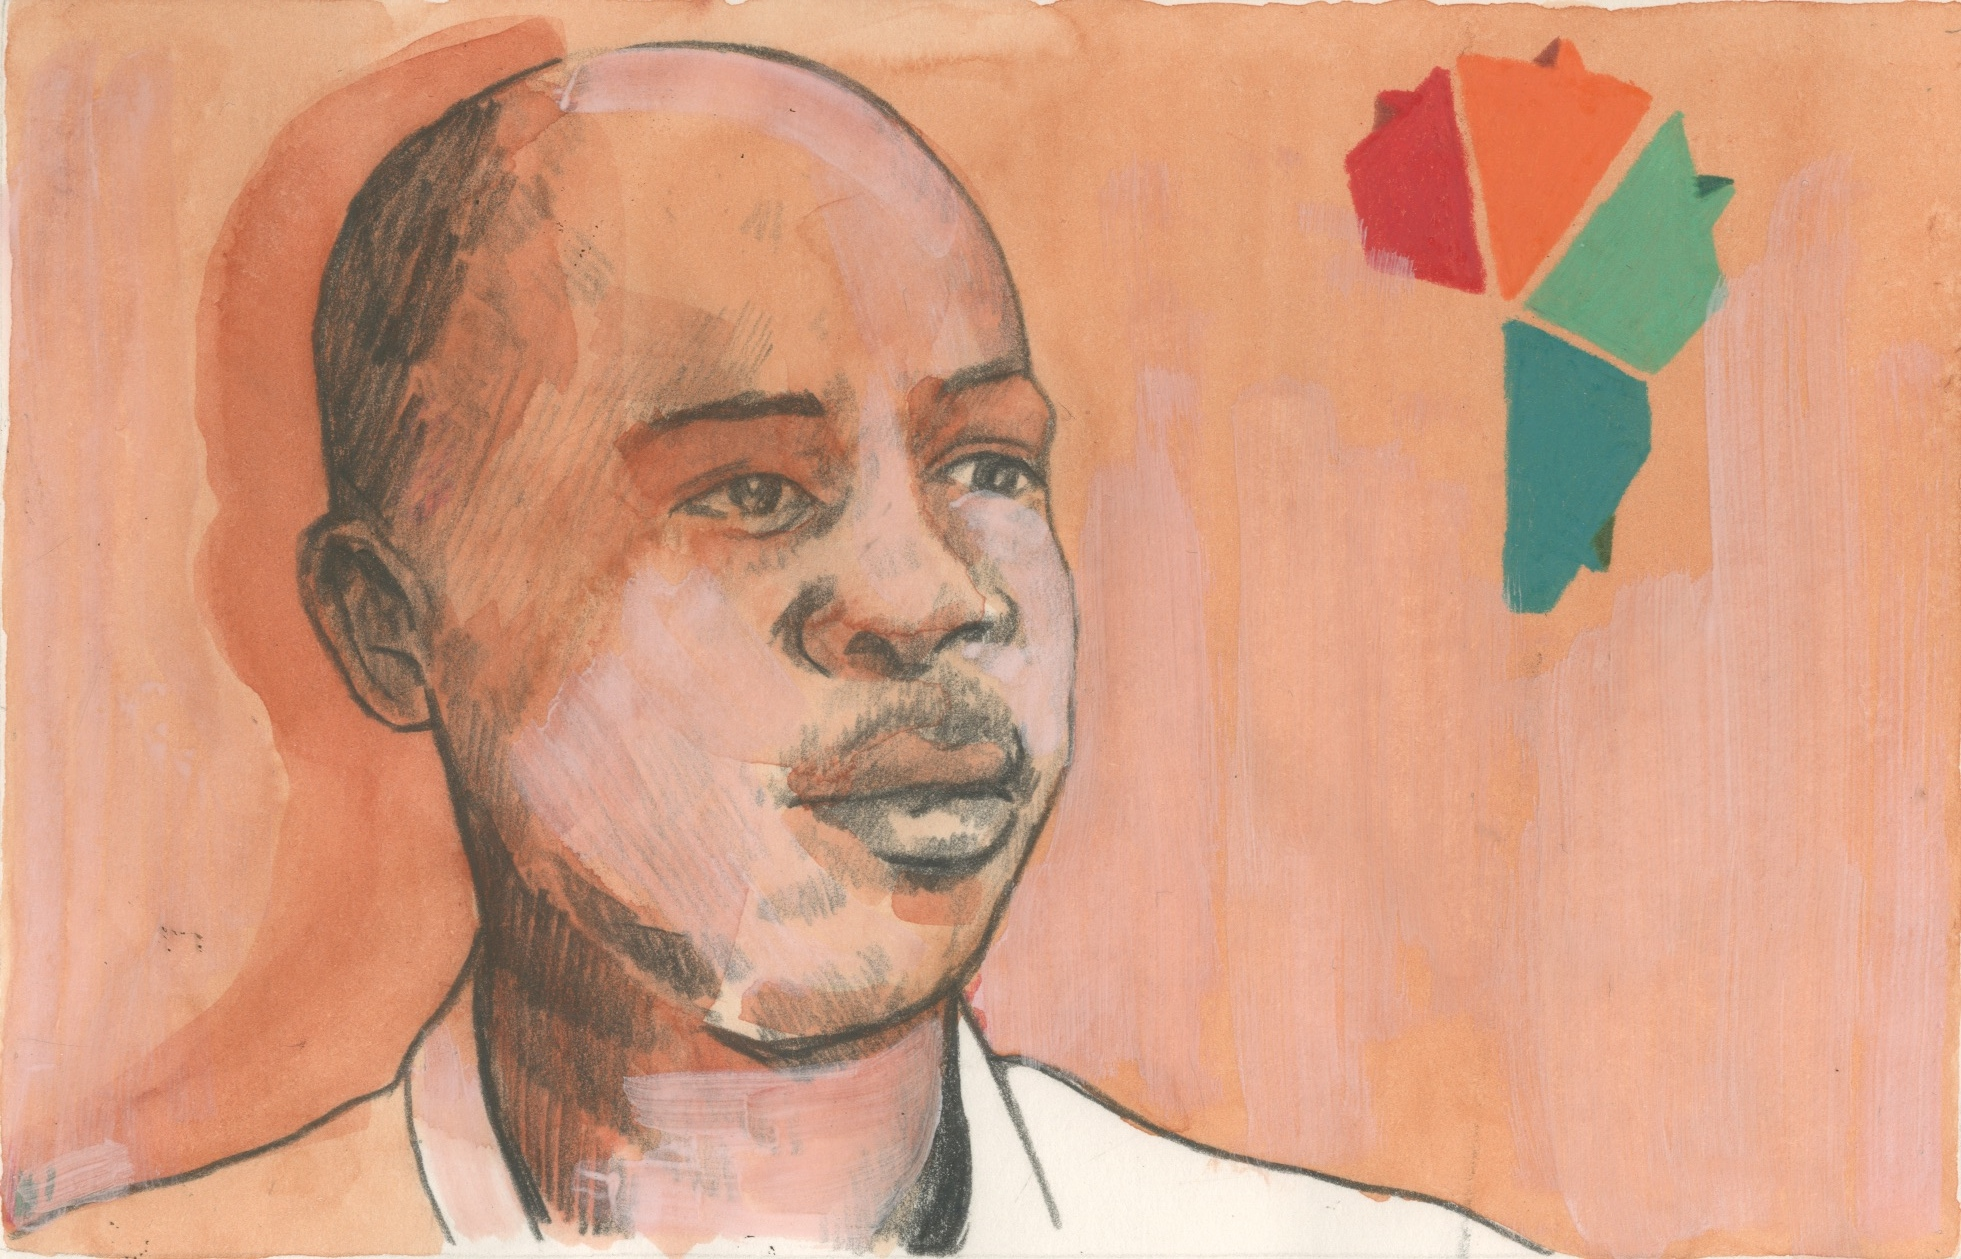 12/01/15 Luis Nhachote an award-winning Mozambican journalist who is working with colleagues to launch Afrileaks which is designed to securely connect whistleblowers with media organisations across Africa